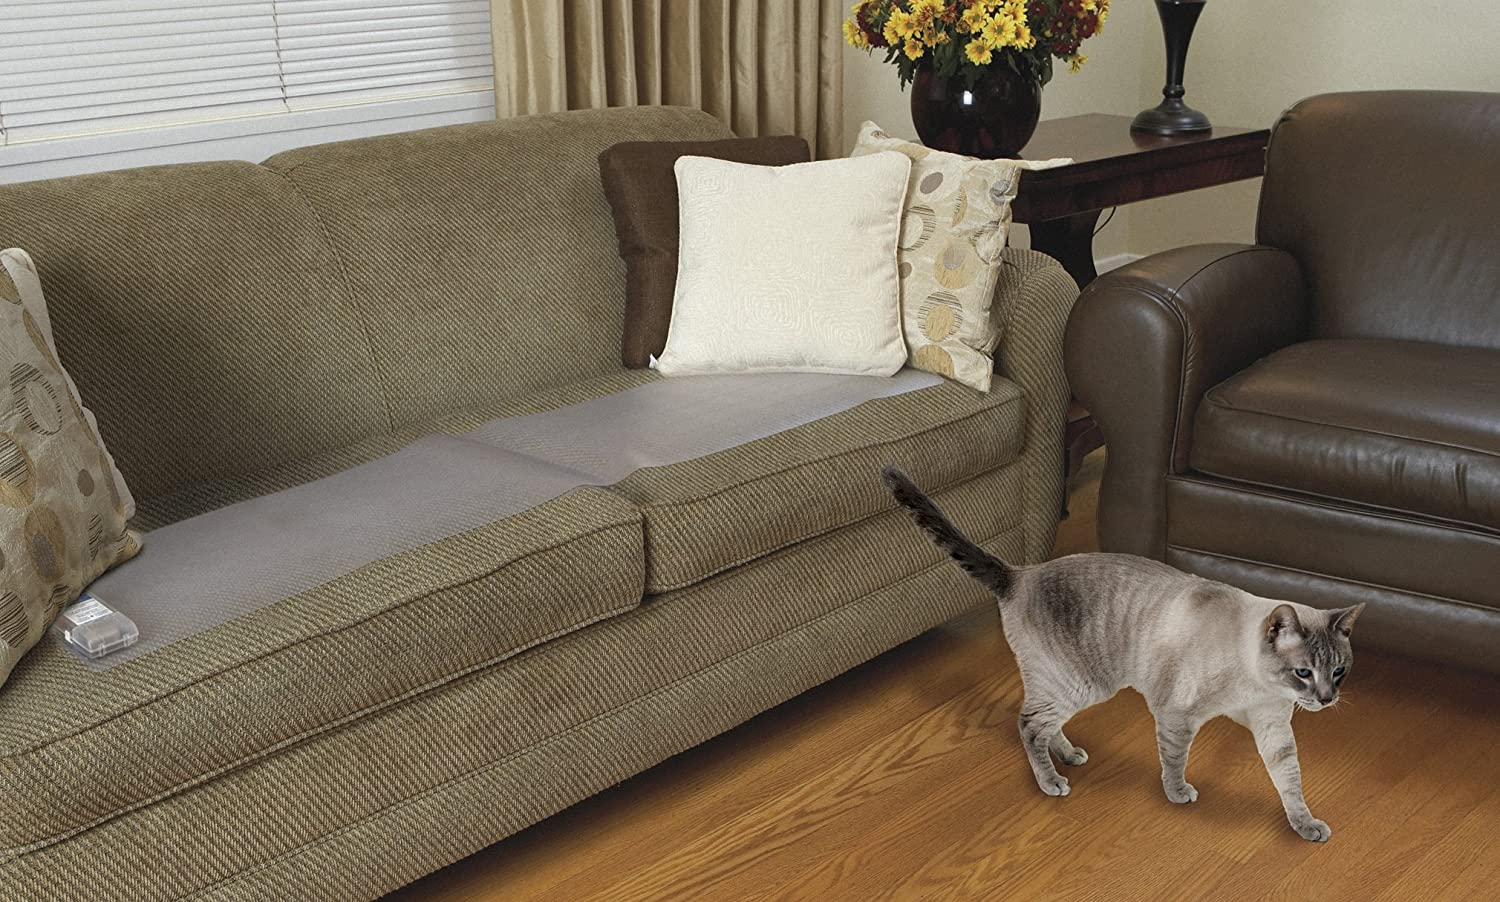 sam and cat sofa bed trick furniture toronto how to keep cats off gradschoolfairs